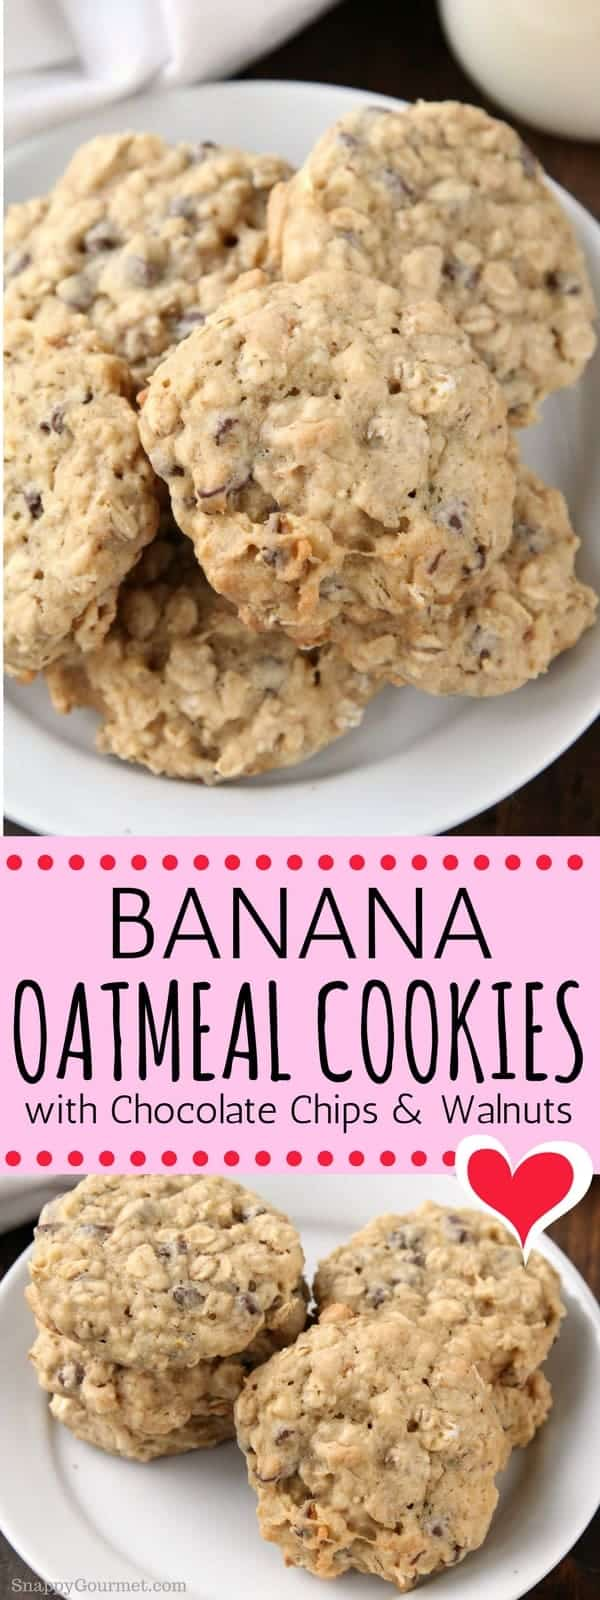 Banana Oatmeal Cookies with Chocolate Chips and Walnuts, an easy homemade oatmeal cookie recipe! These Banana Oatmeal Cookies are the best, crispy on the outside and soft and chewy on the inside loaded with banana, oats, chocolate chips, and nuts. #cookies #oatmeal #banana #SnappyGourmet #yummy #dessert #walnuts #chocolatechips #homemade